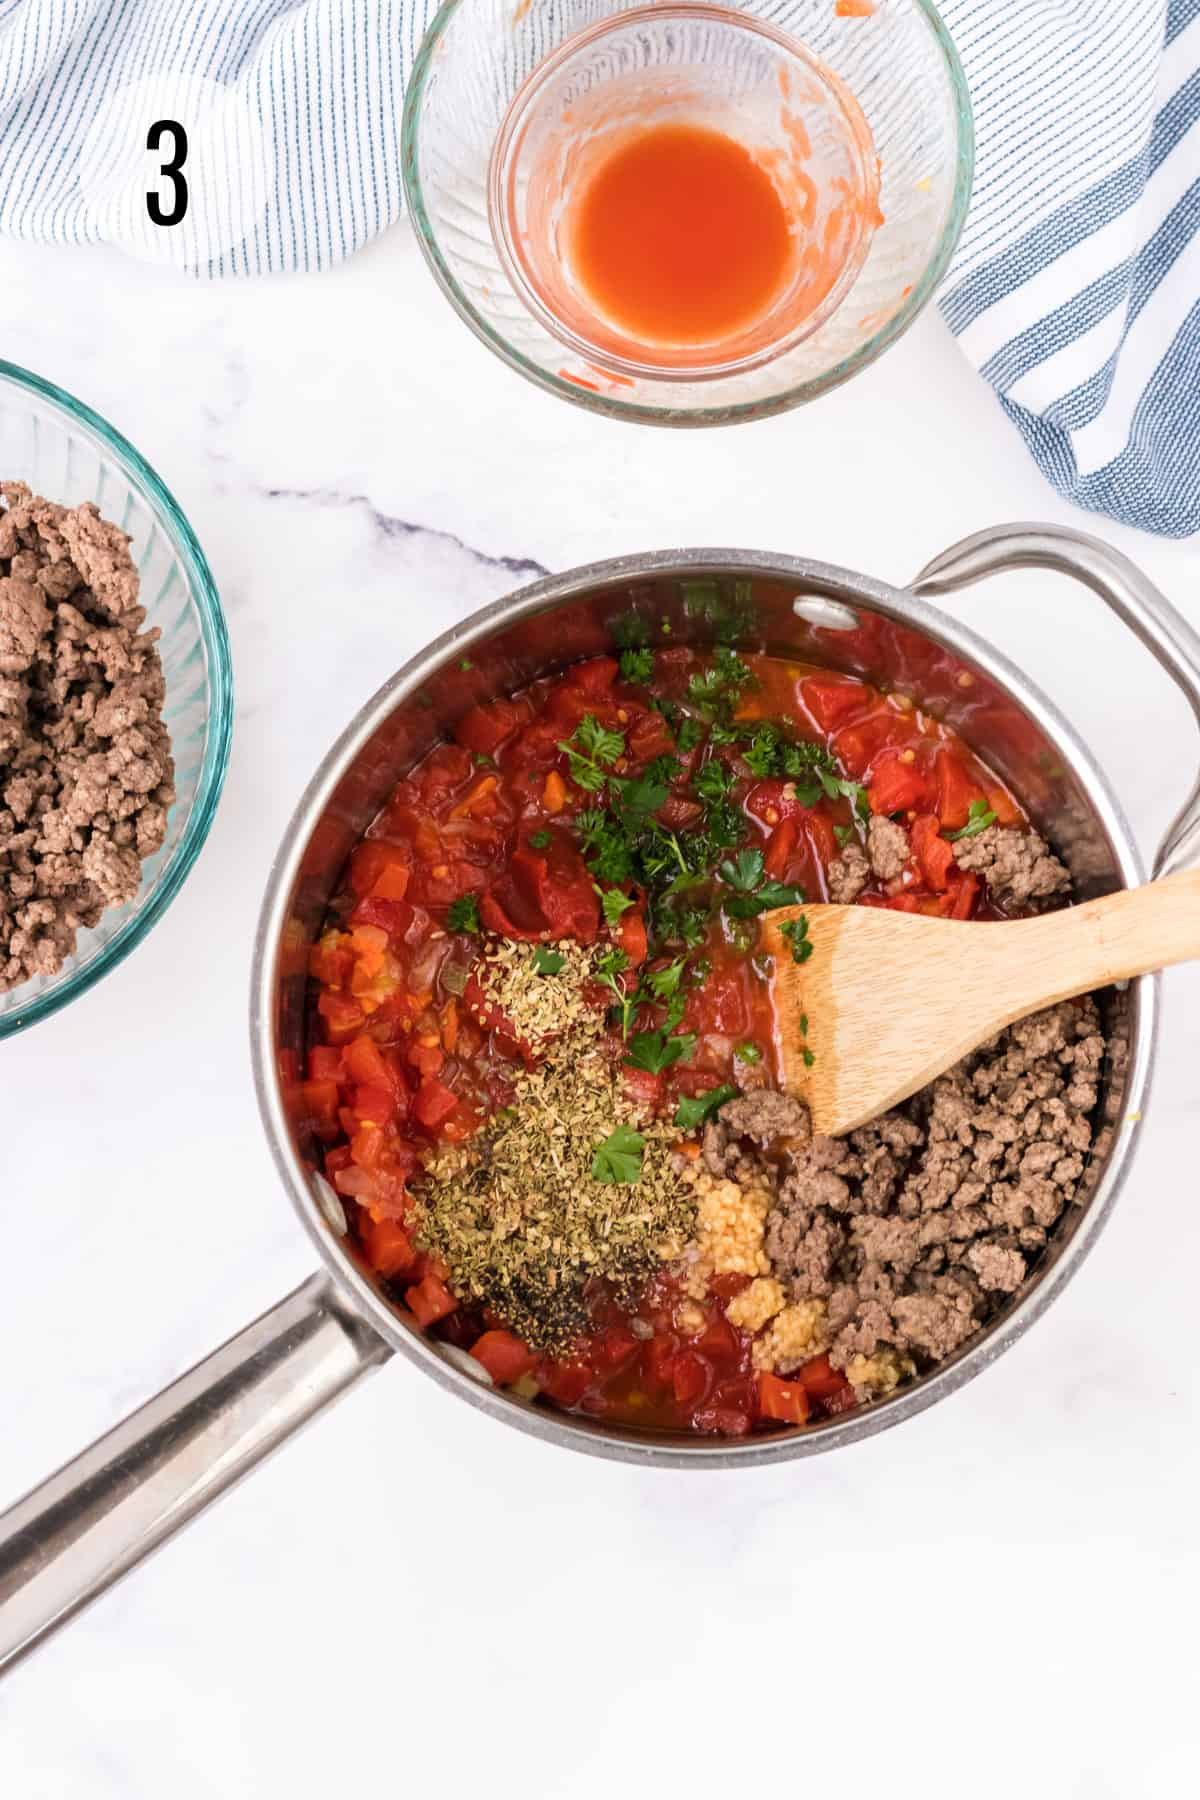 Saucepan with ingredients for homemade spaghetti meat sauce with herbs, ground beef and parsley with extra ingredient bowls in background with blue and white towel.